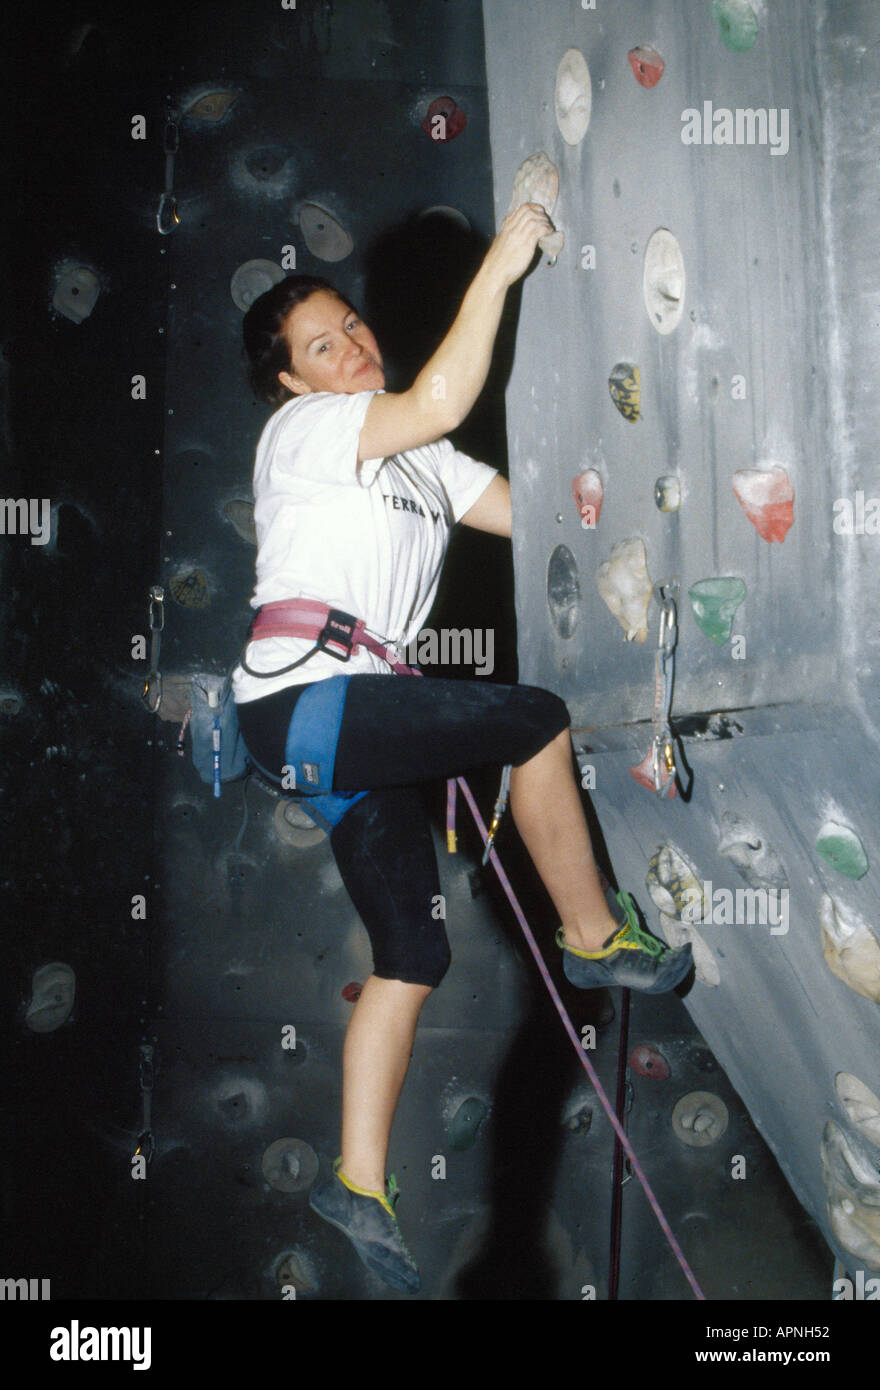 INDOOR CLIMBING ACTION - Stock Image